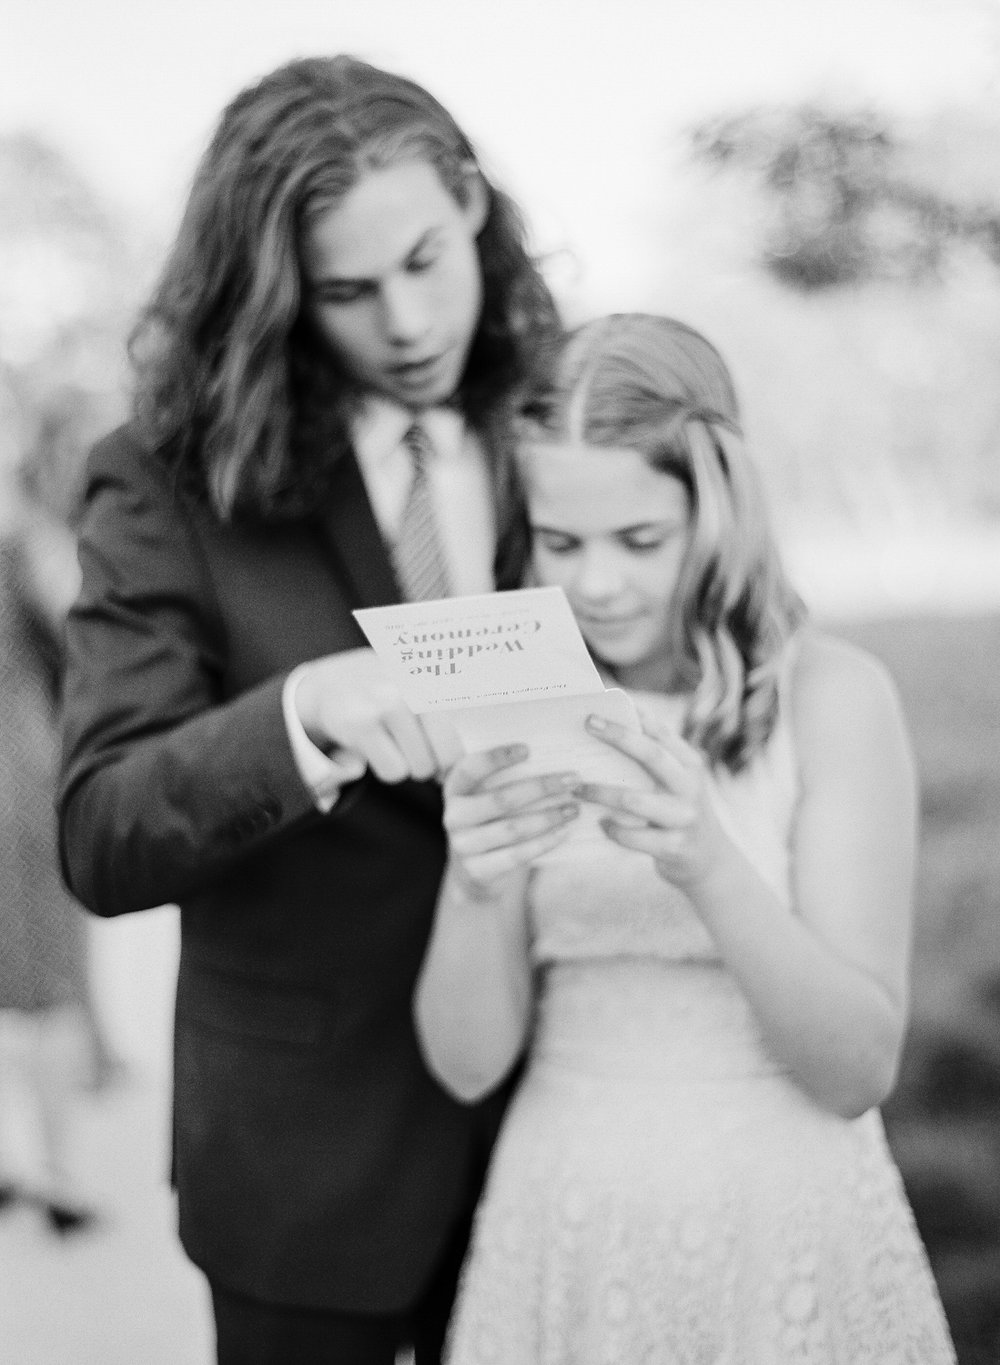 PROSPECT_HOUSE_WEDDING_AUSTIN_TX_BY_MATTHEW_MOORE_PHOTOGRAPHY_00317-2.jpg